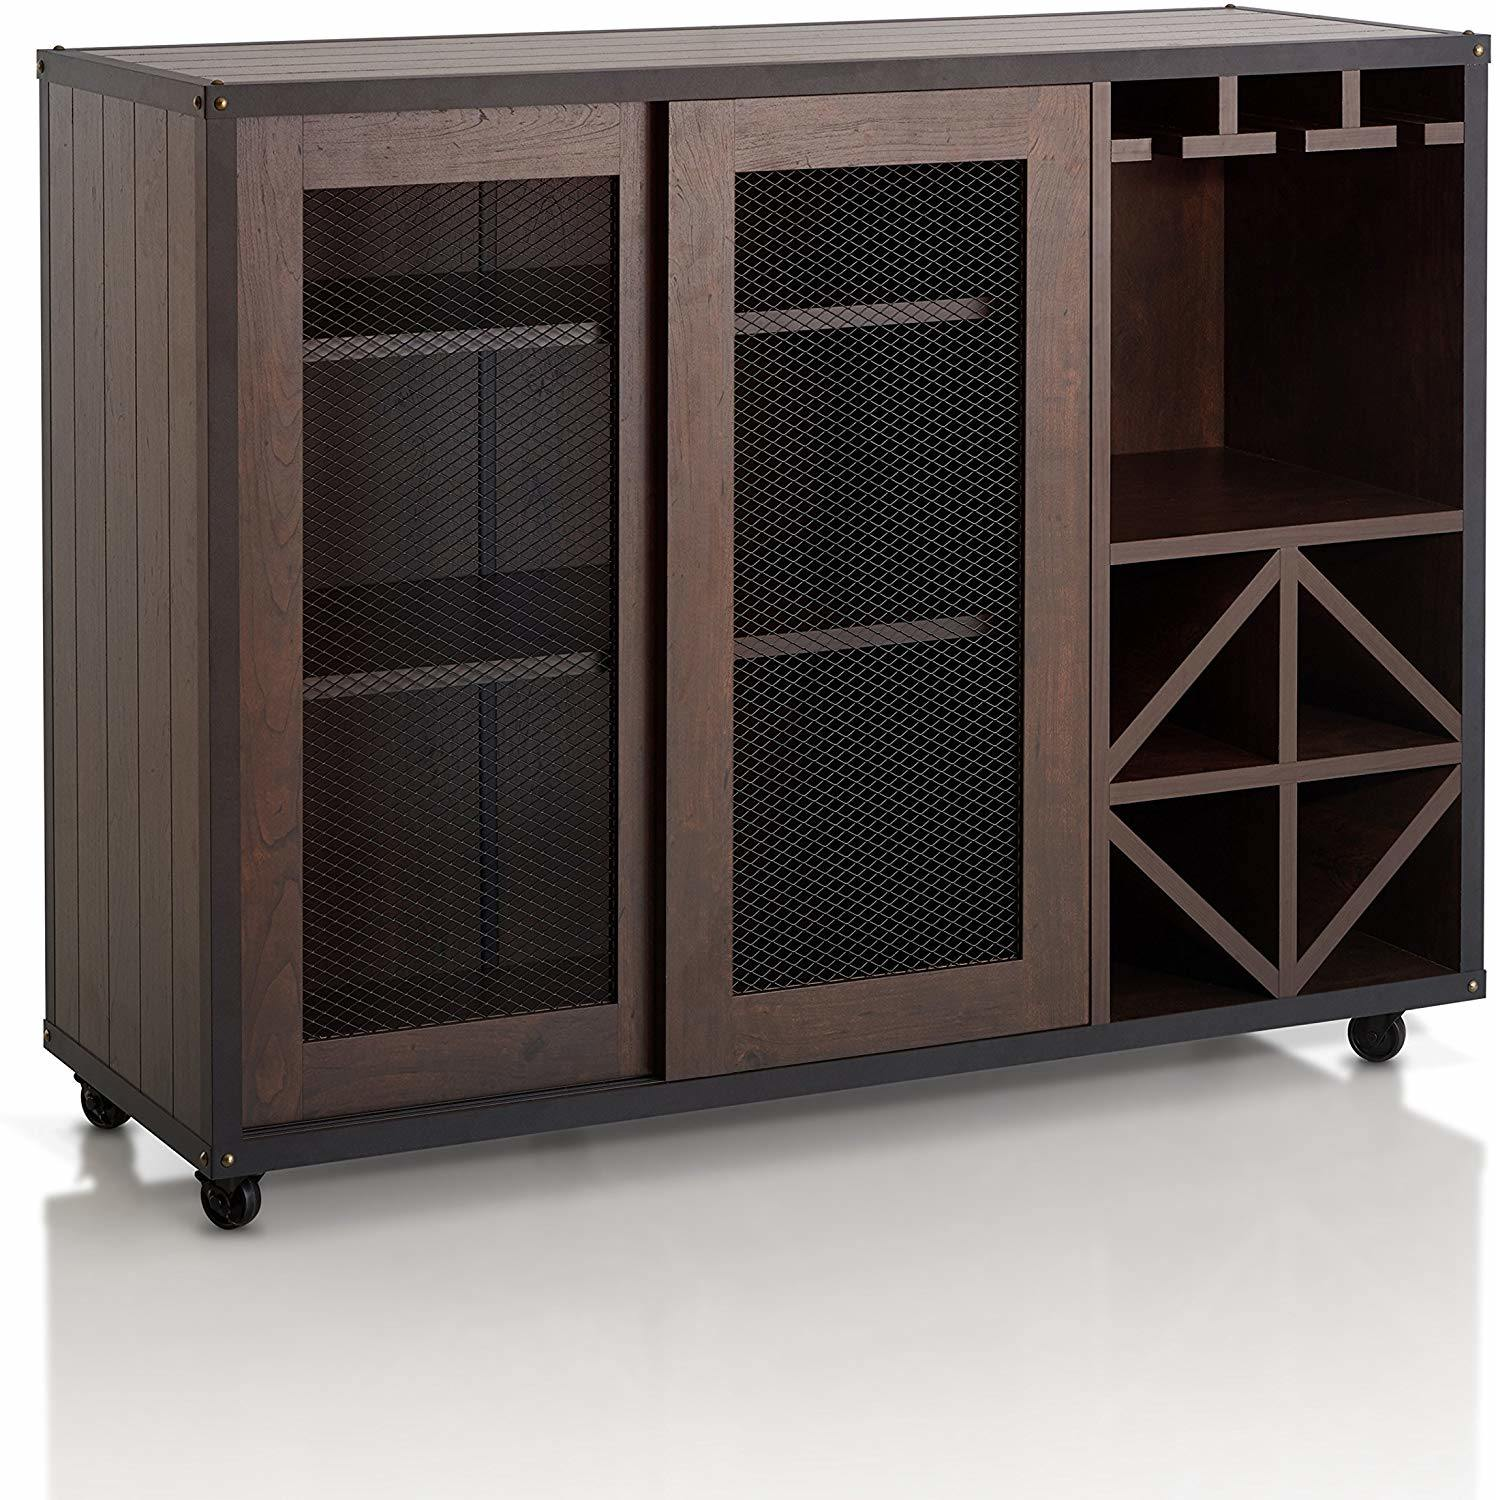 Chinese Furniture Wooden Buffet Antique Reproduction Furniture Kitchen Cabinets Sliding Door Multi Storage Buffet Sideboard With Wine Rack And Caster Wheels Chinese Furniture Wooden Buffet Wooden Kitchen Cabinet